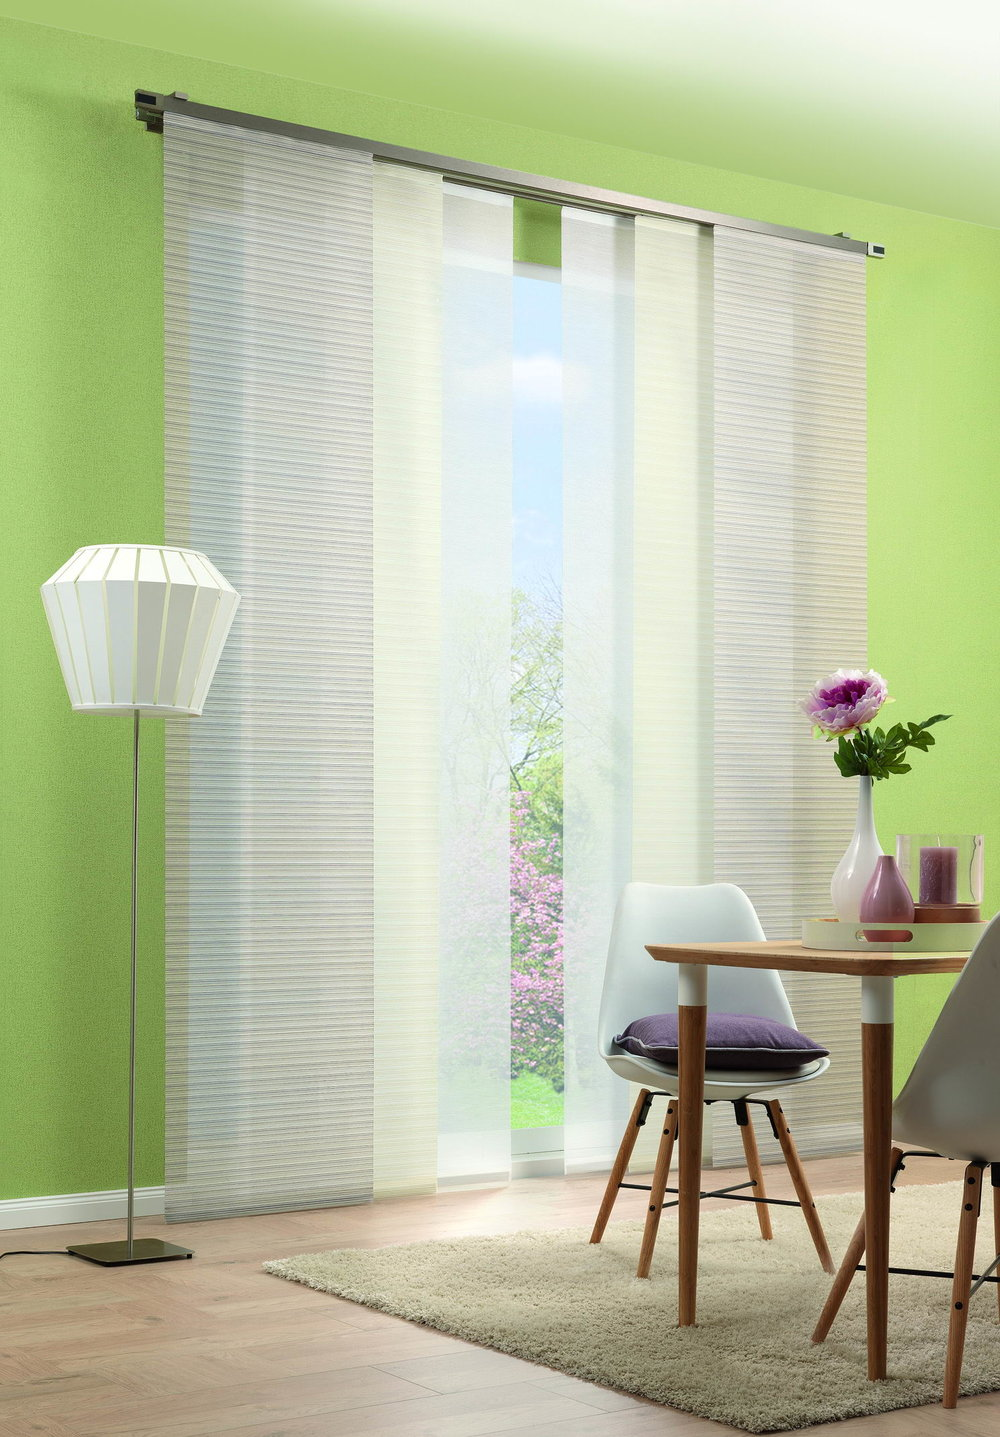 Sliding panels Trevira CS - Colorful. Individually. Combinable.